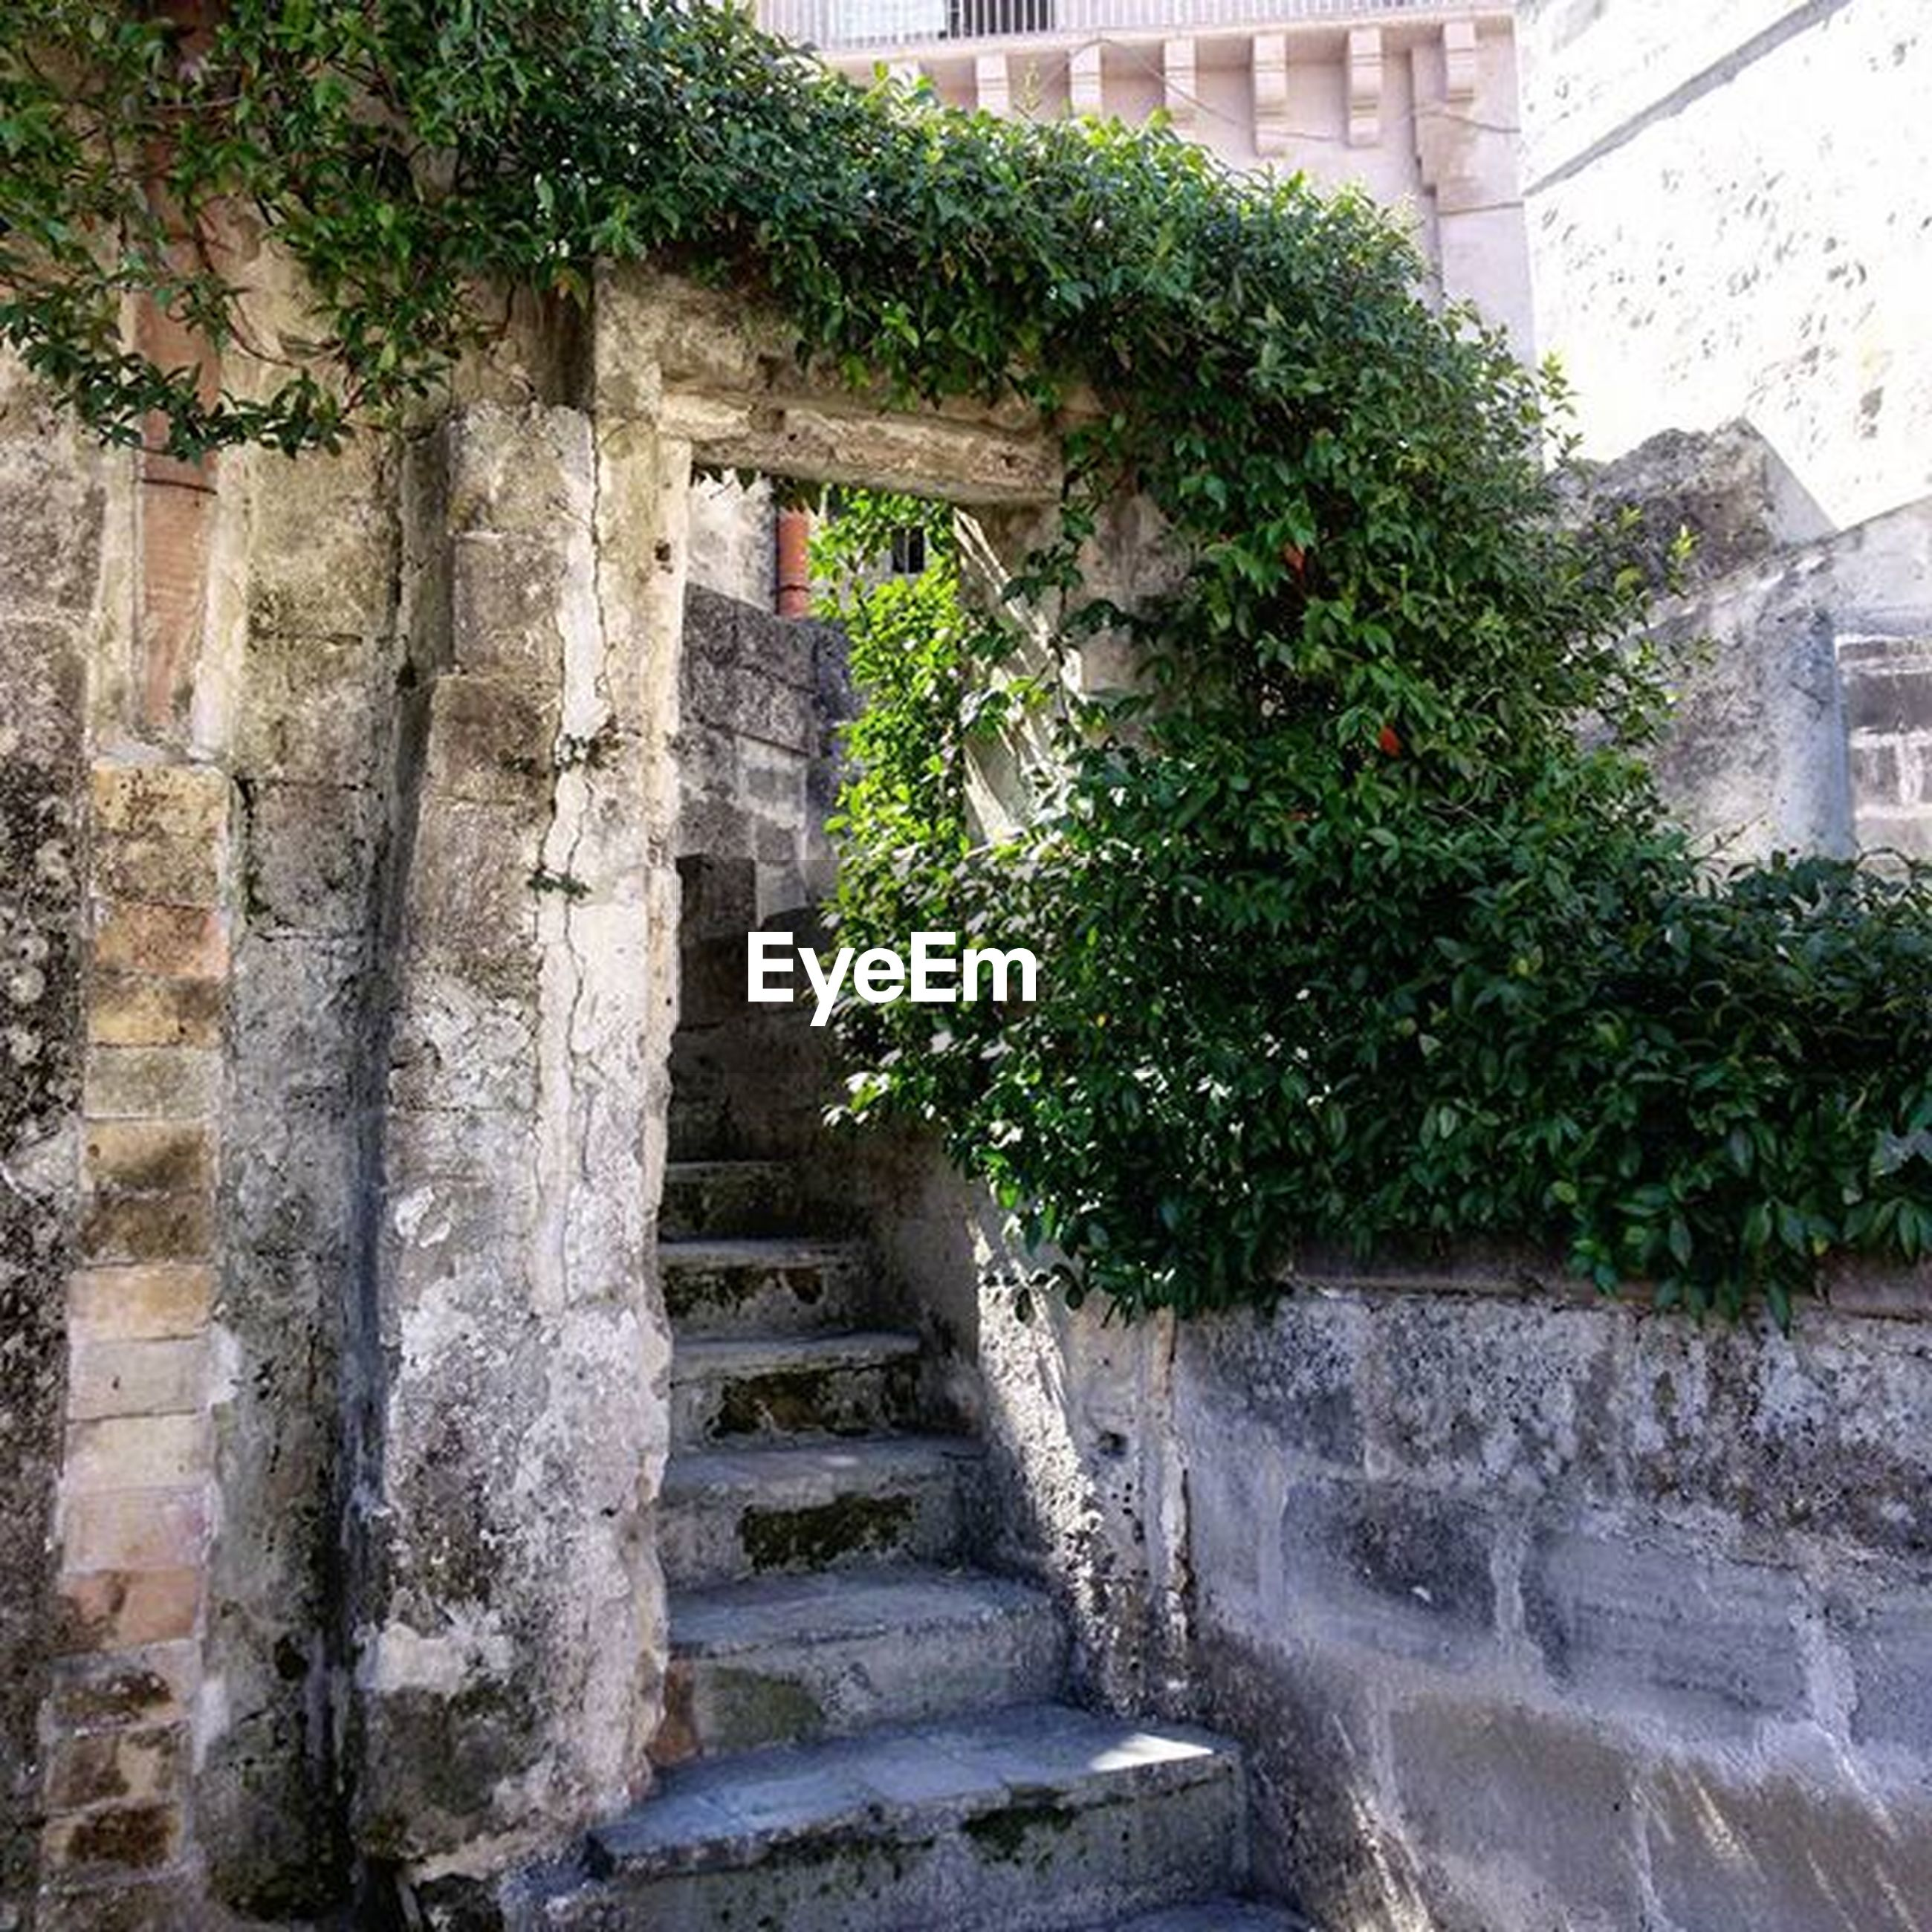 built structure, plant, architecture, building exterior, steps, growth, wall - building feature, house, door, green color, staircase, steps and staircases, wall, ivy, potted plant, entrance, old, window, tree, stone wall